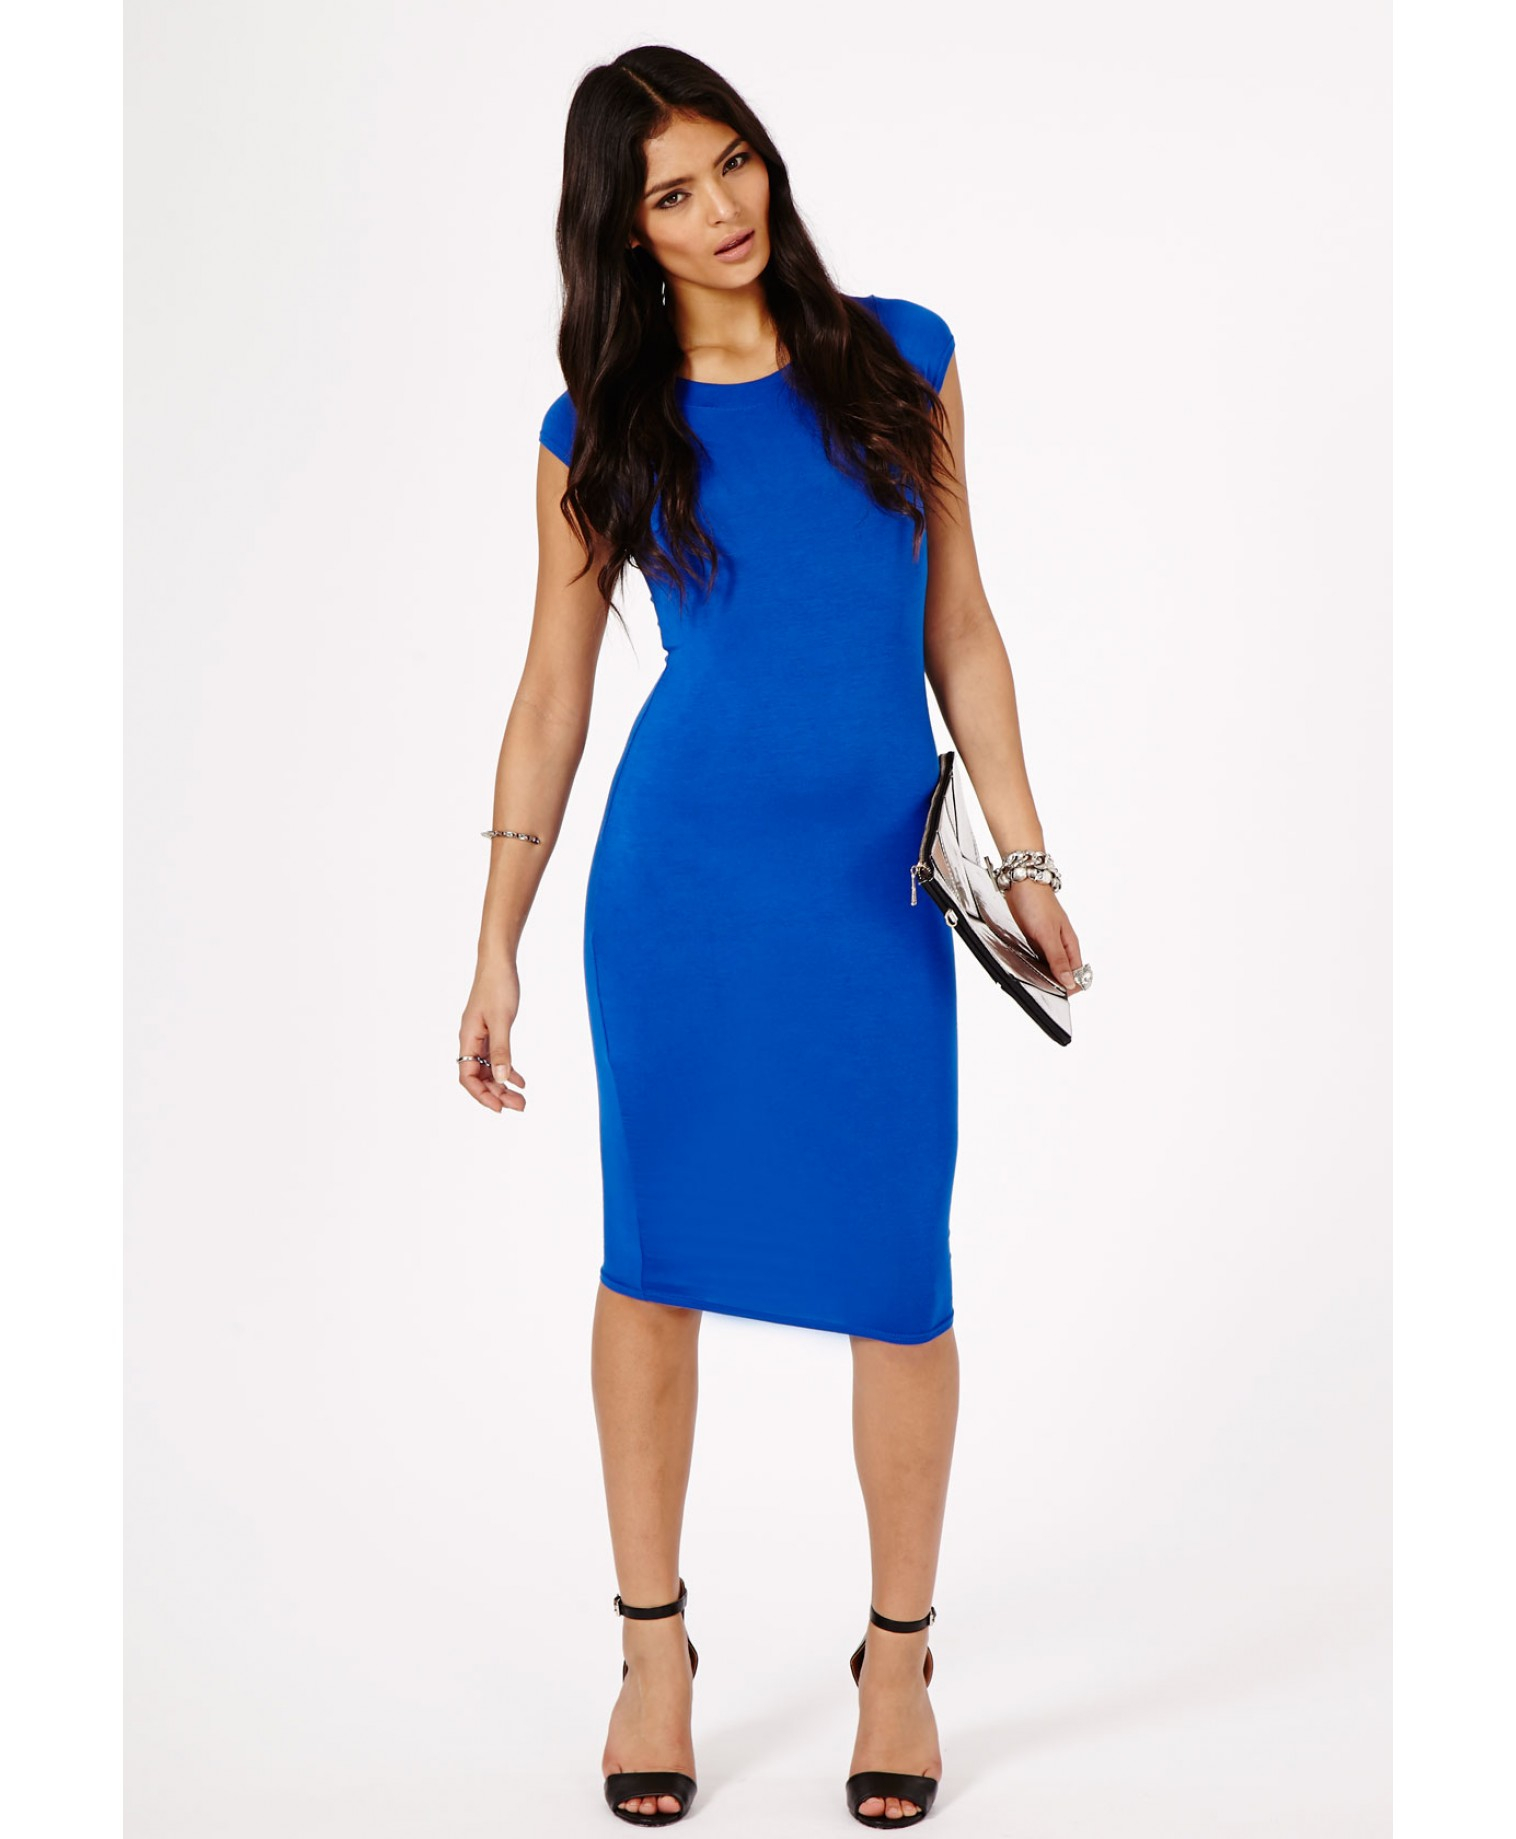 Lyst - Missguided Cailey Bodycon Midi Dress In Cobalt Blue in Blue fc247cf74af8